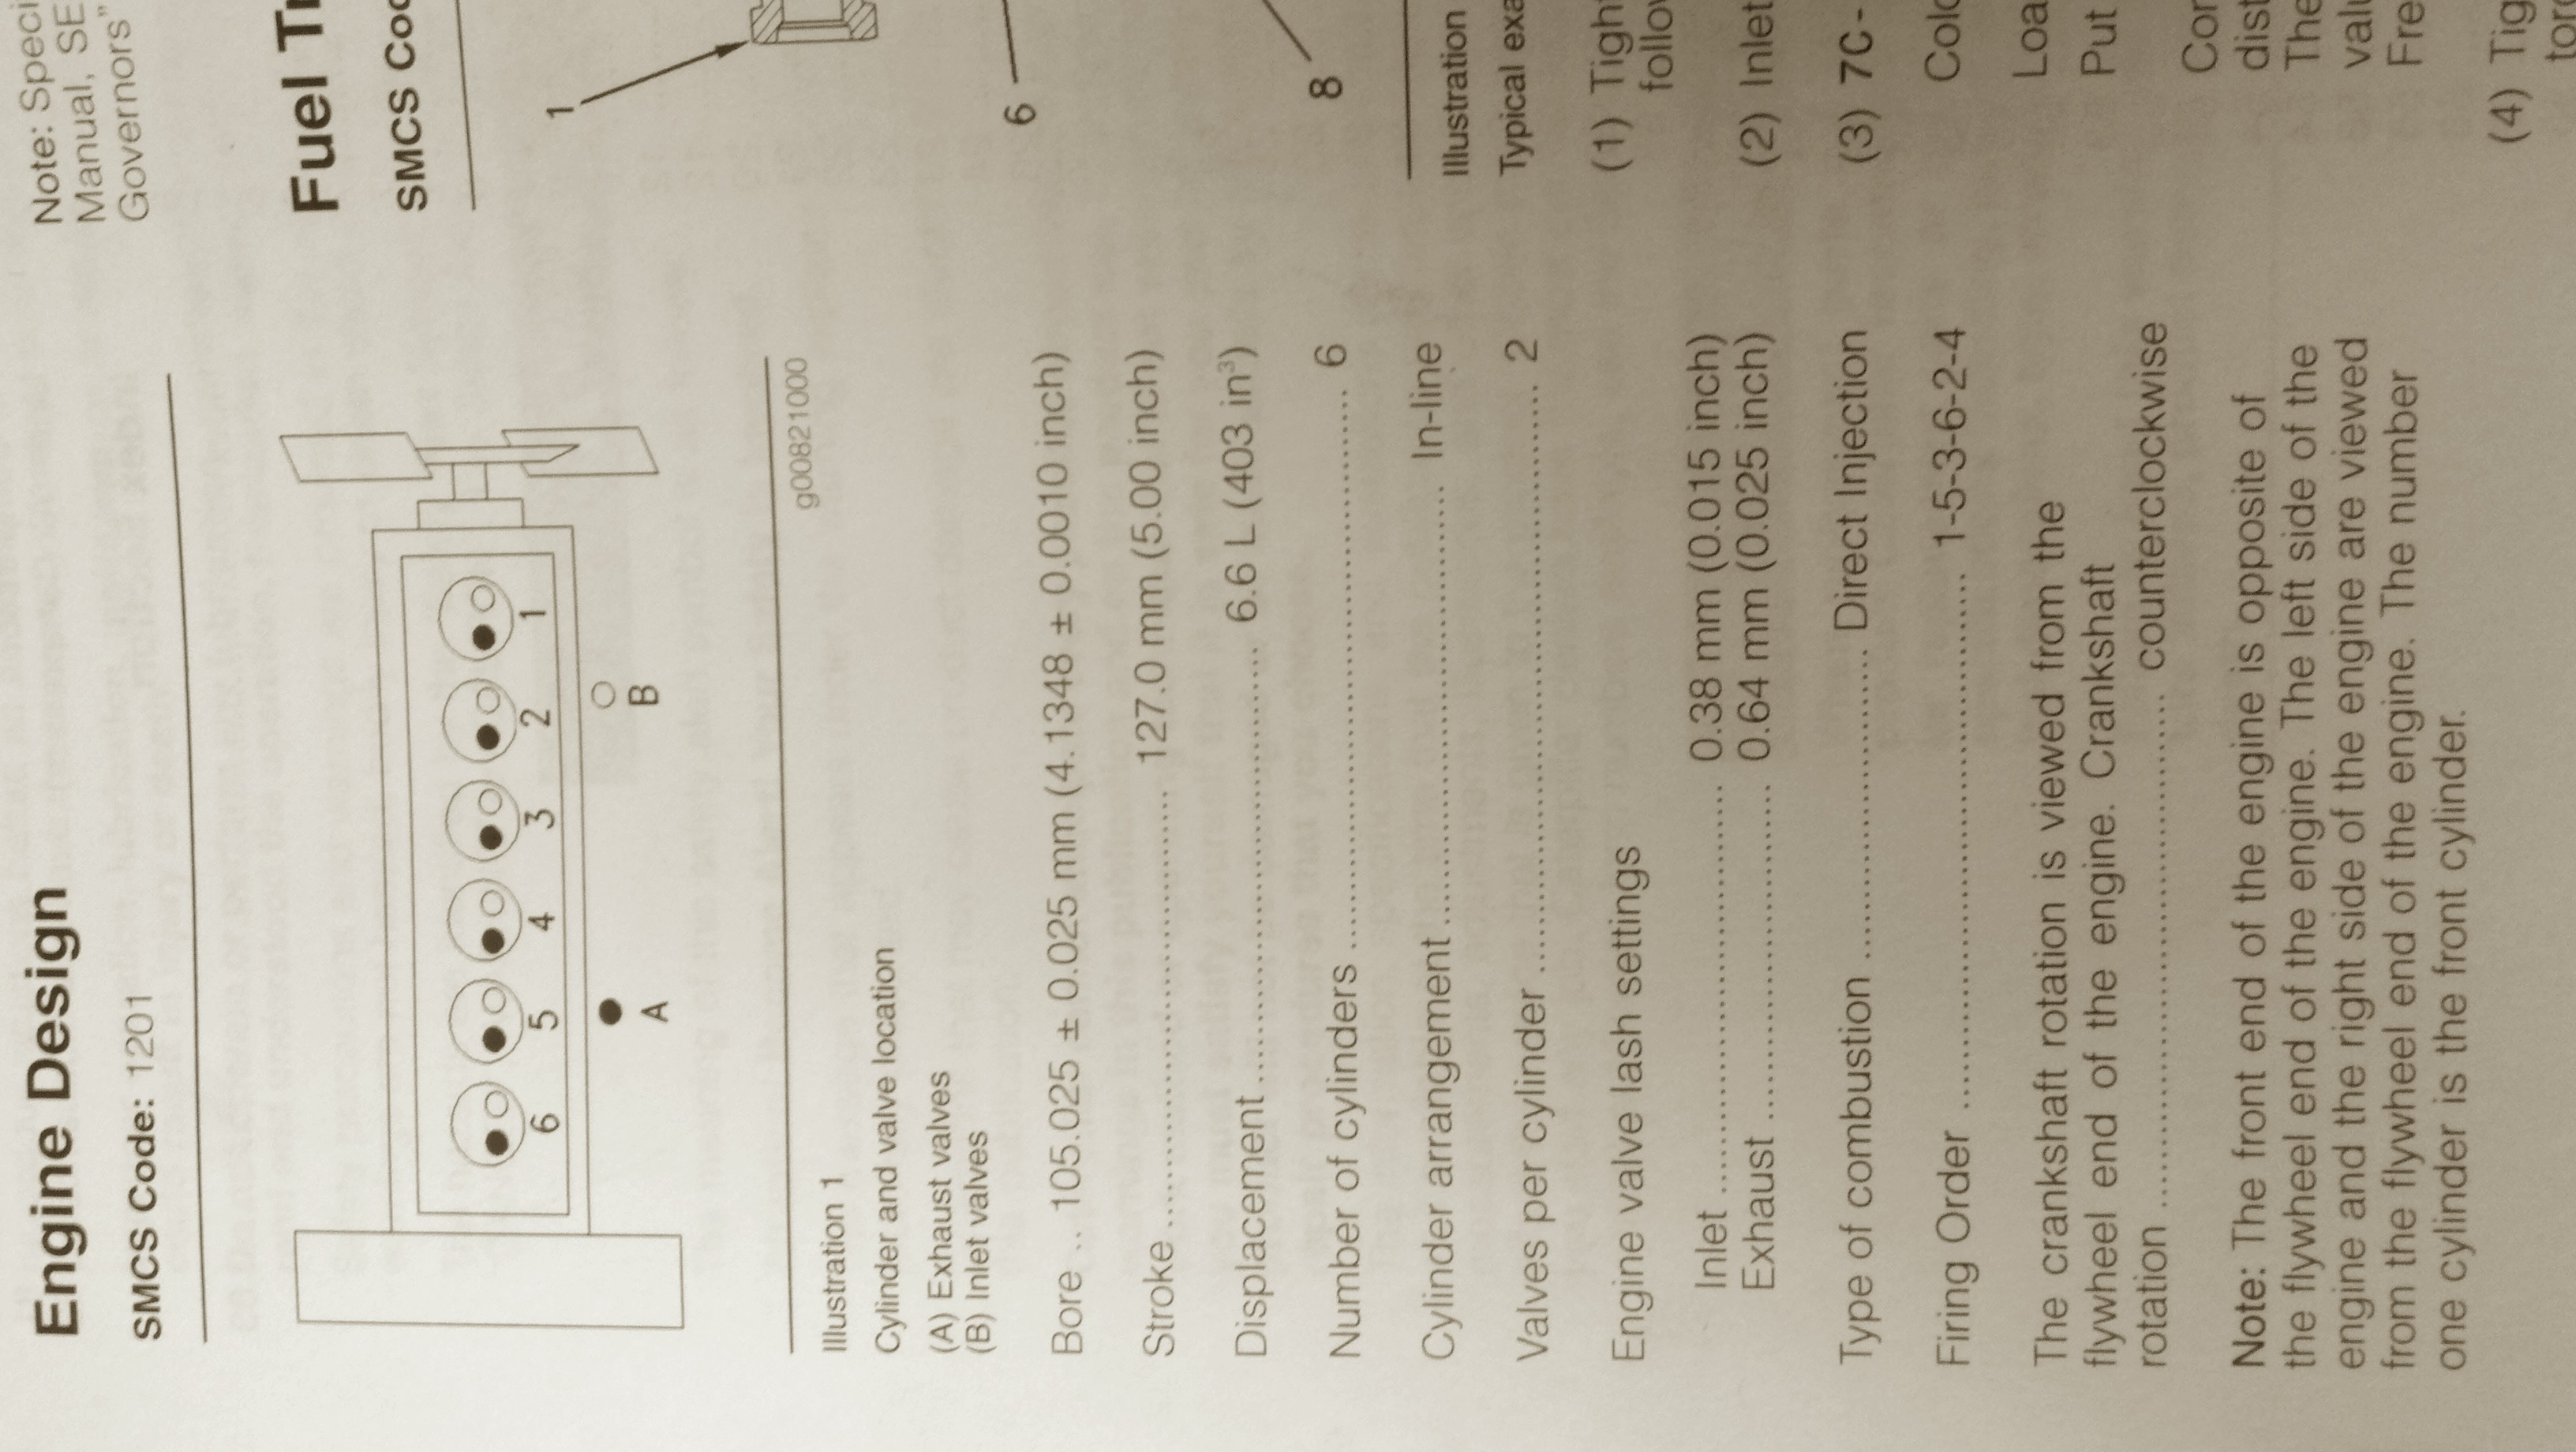 Looking for technical data on caterpillar 3116 engine serial